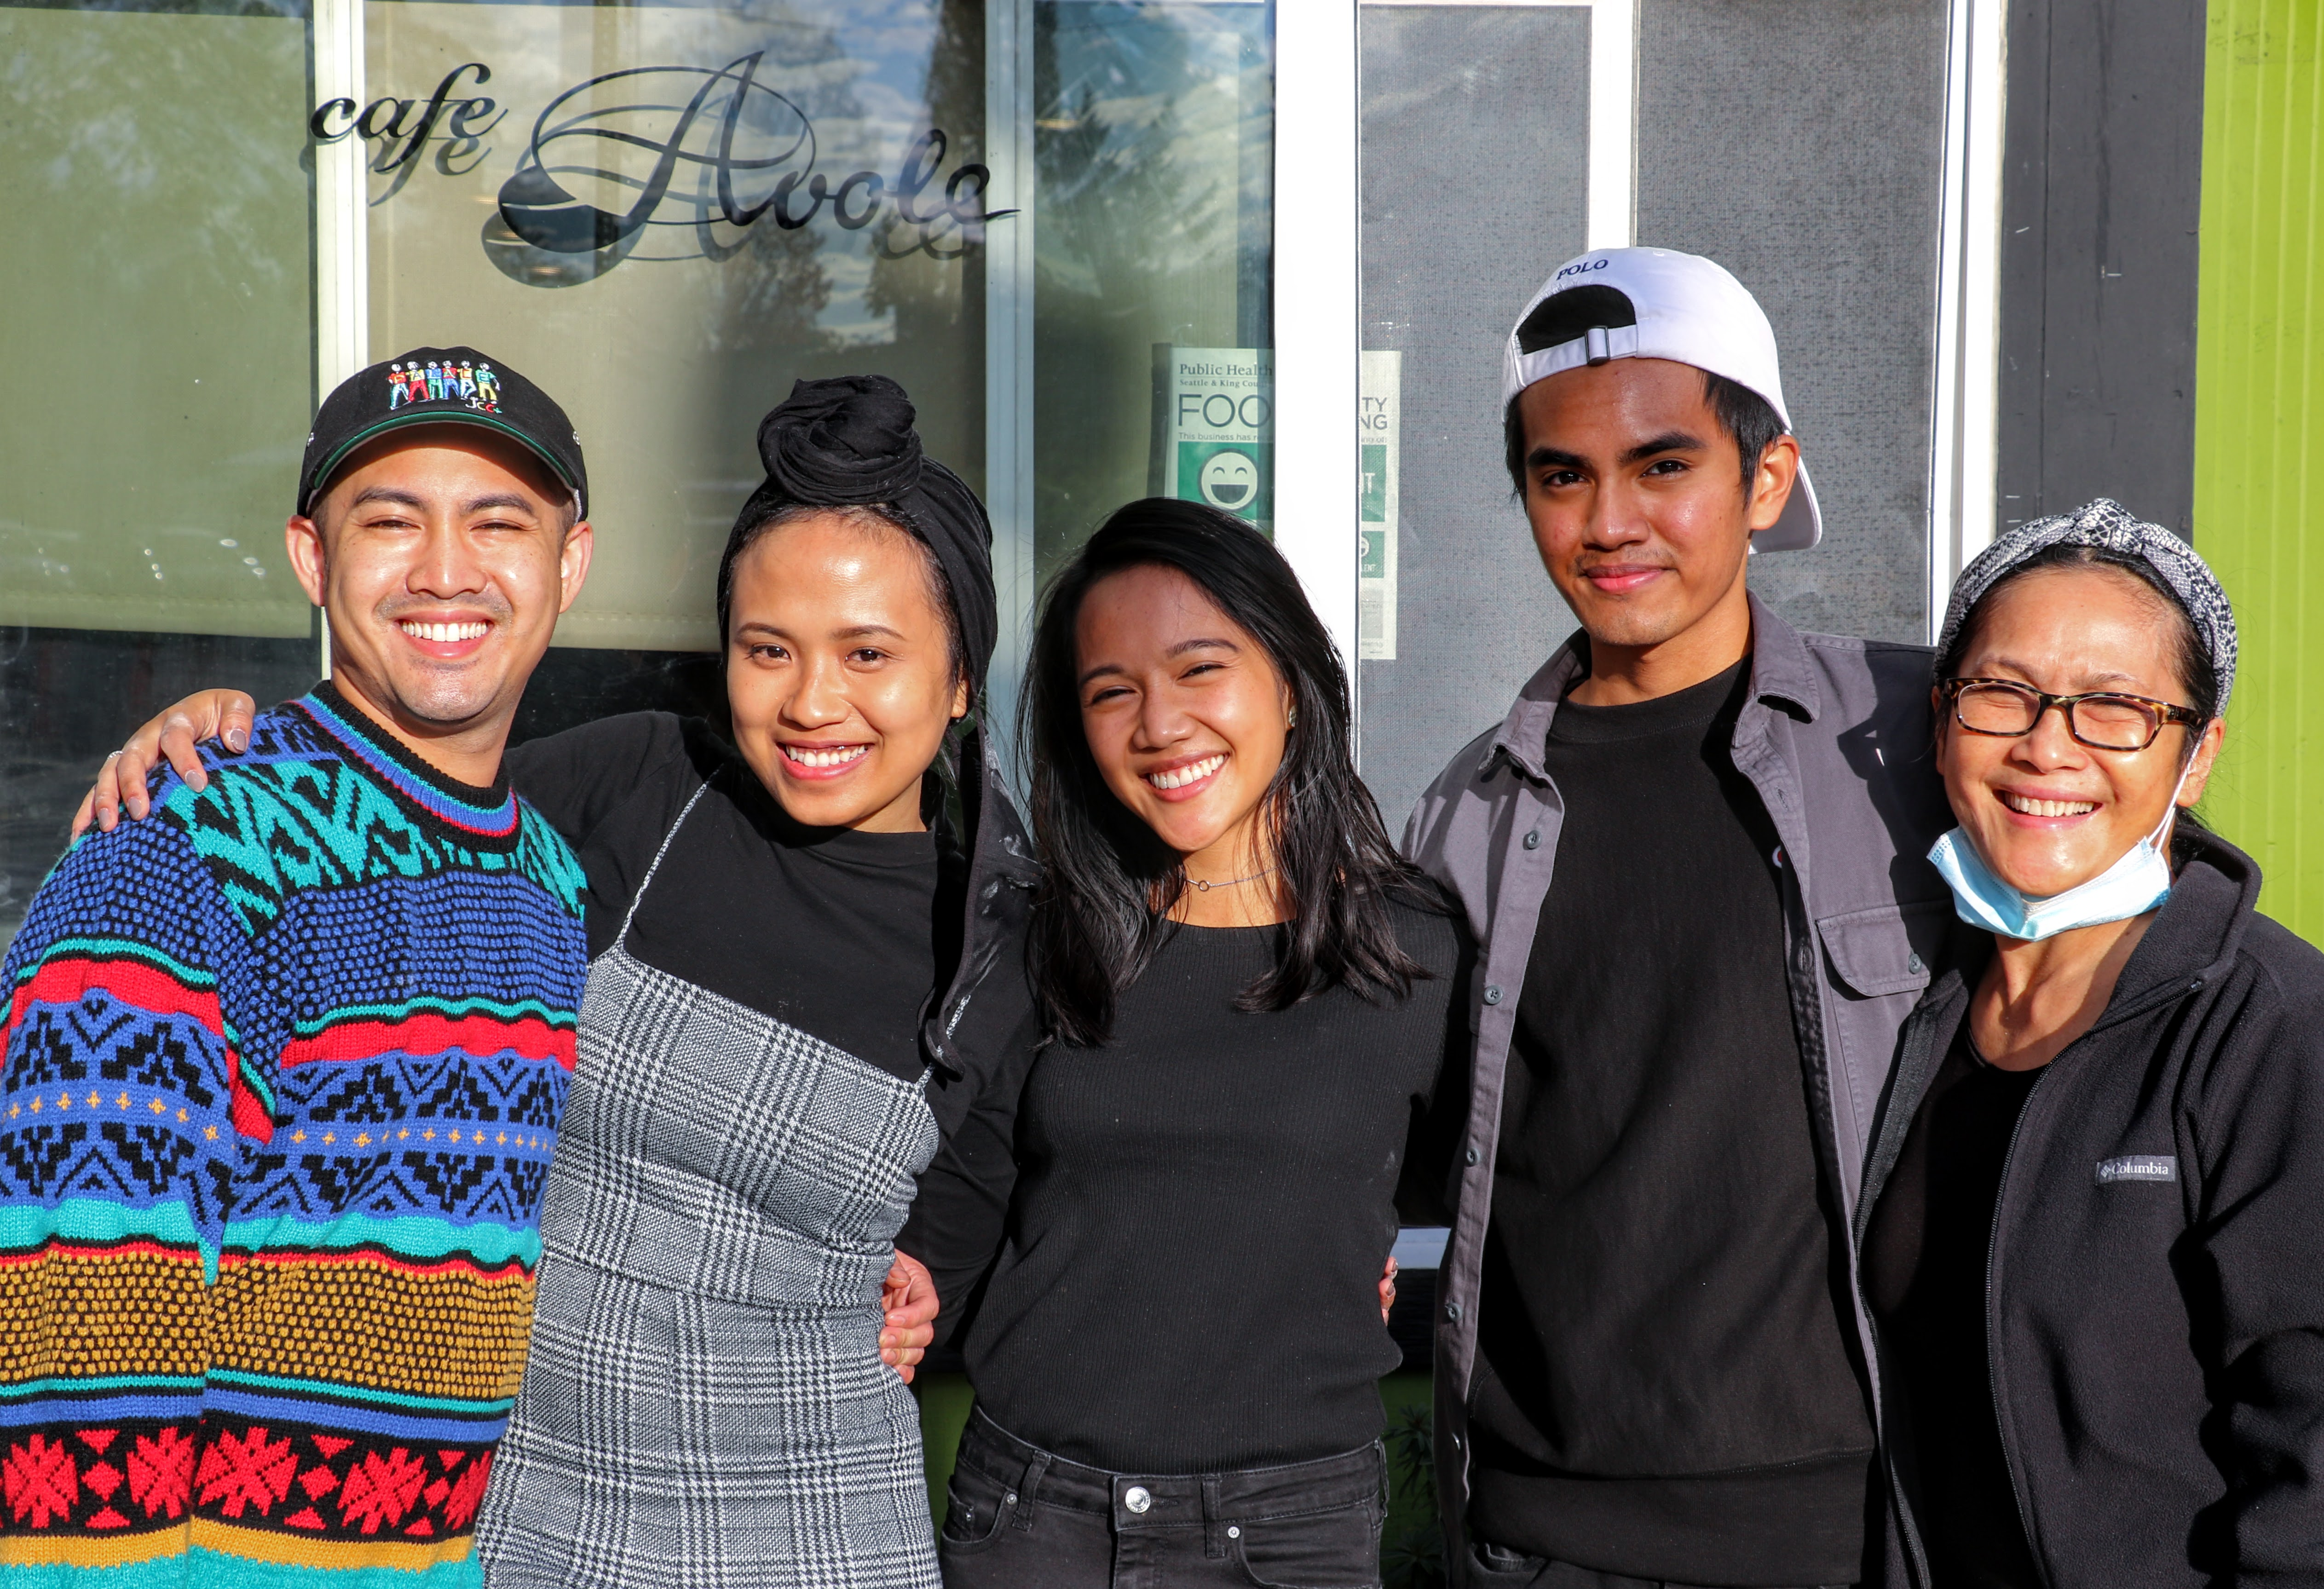 Five family members stand together smiling in front of a cafe.